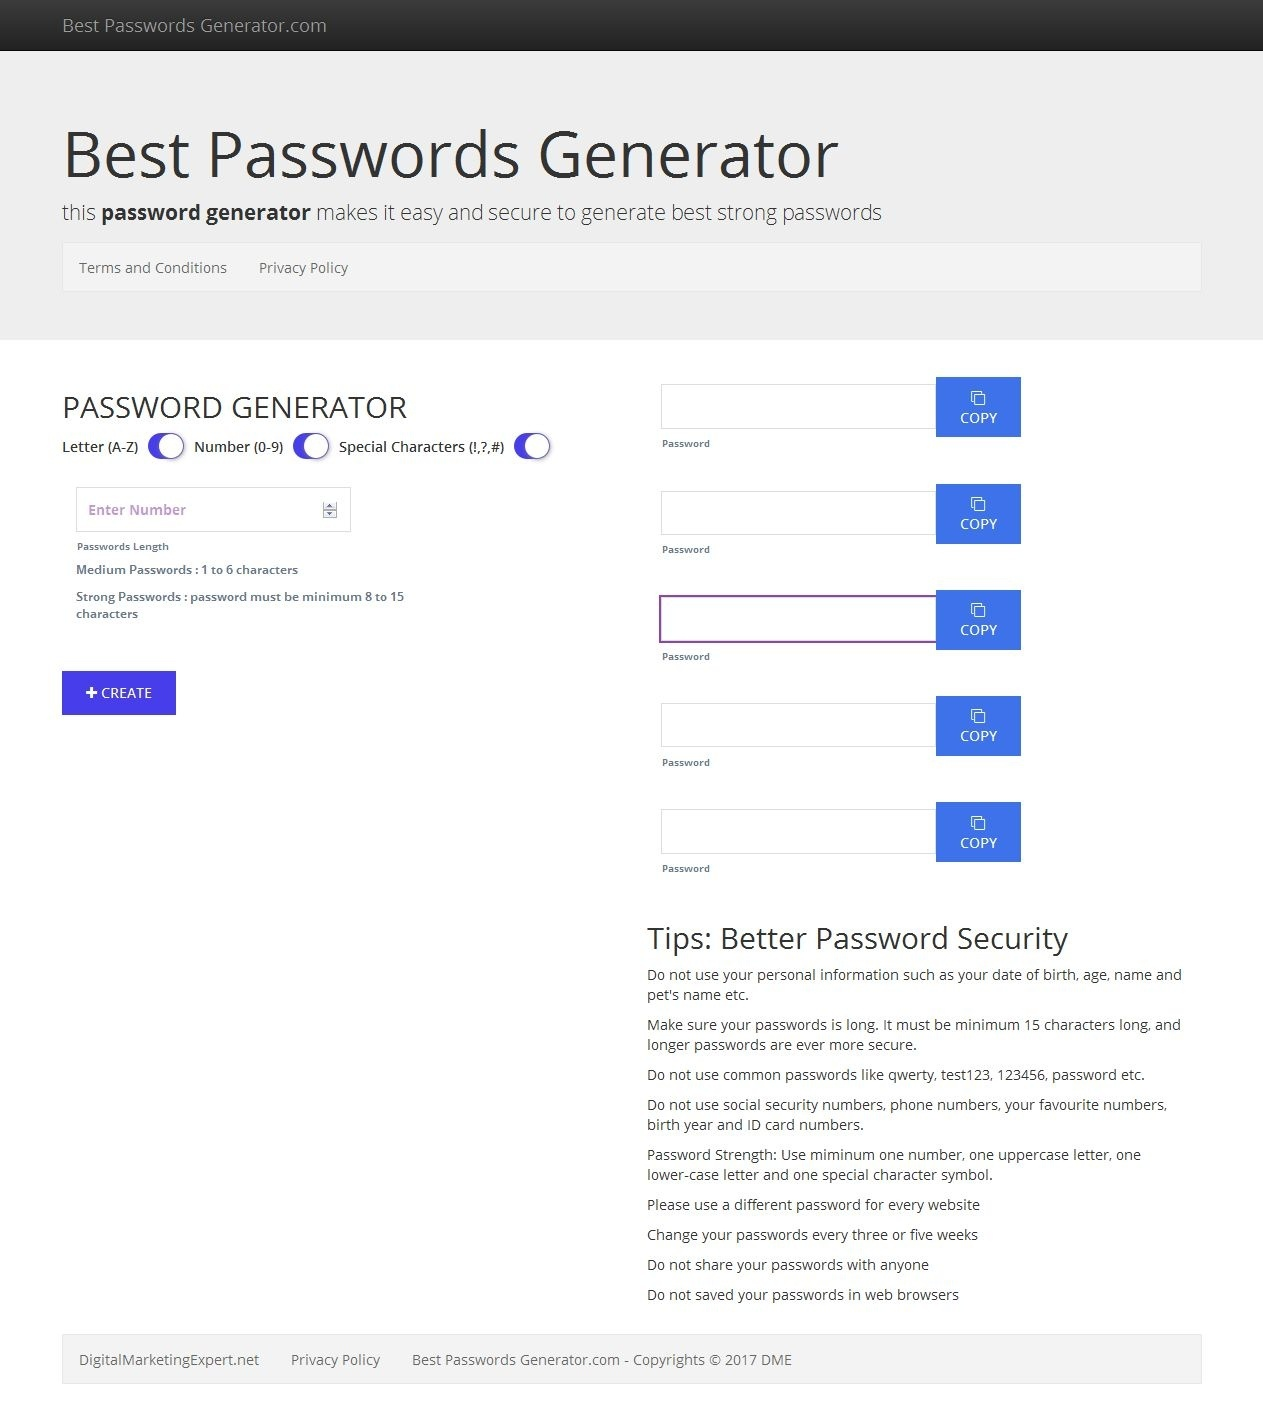 Which are the most secure password generators on the Internet? - Quora